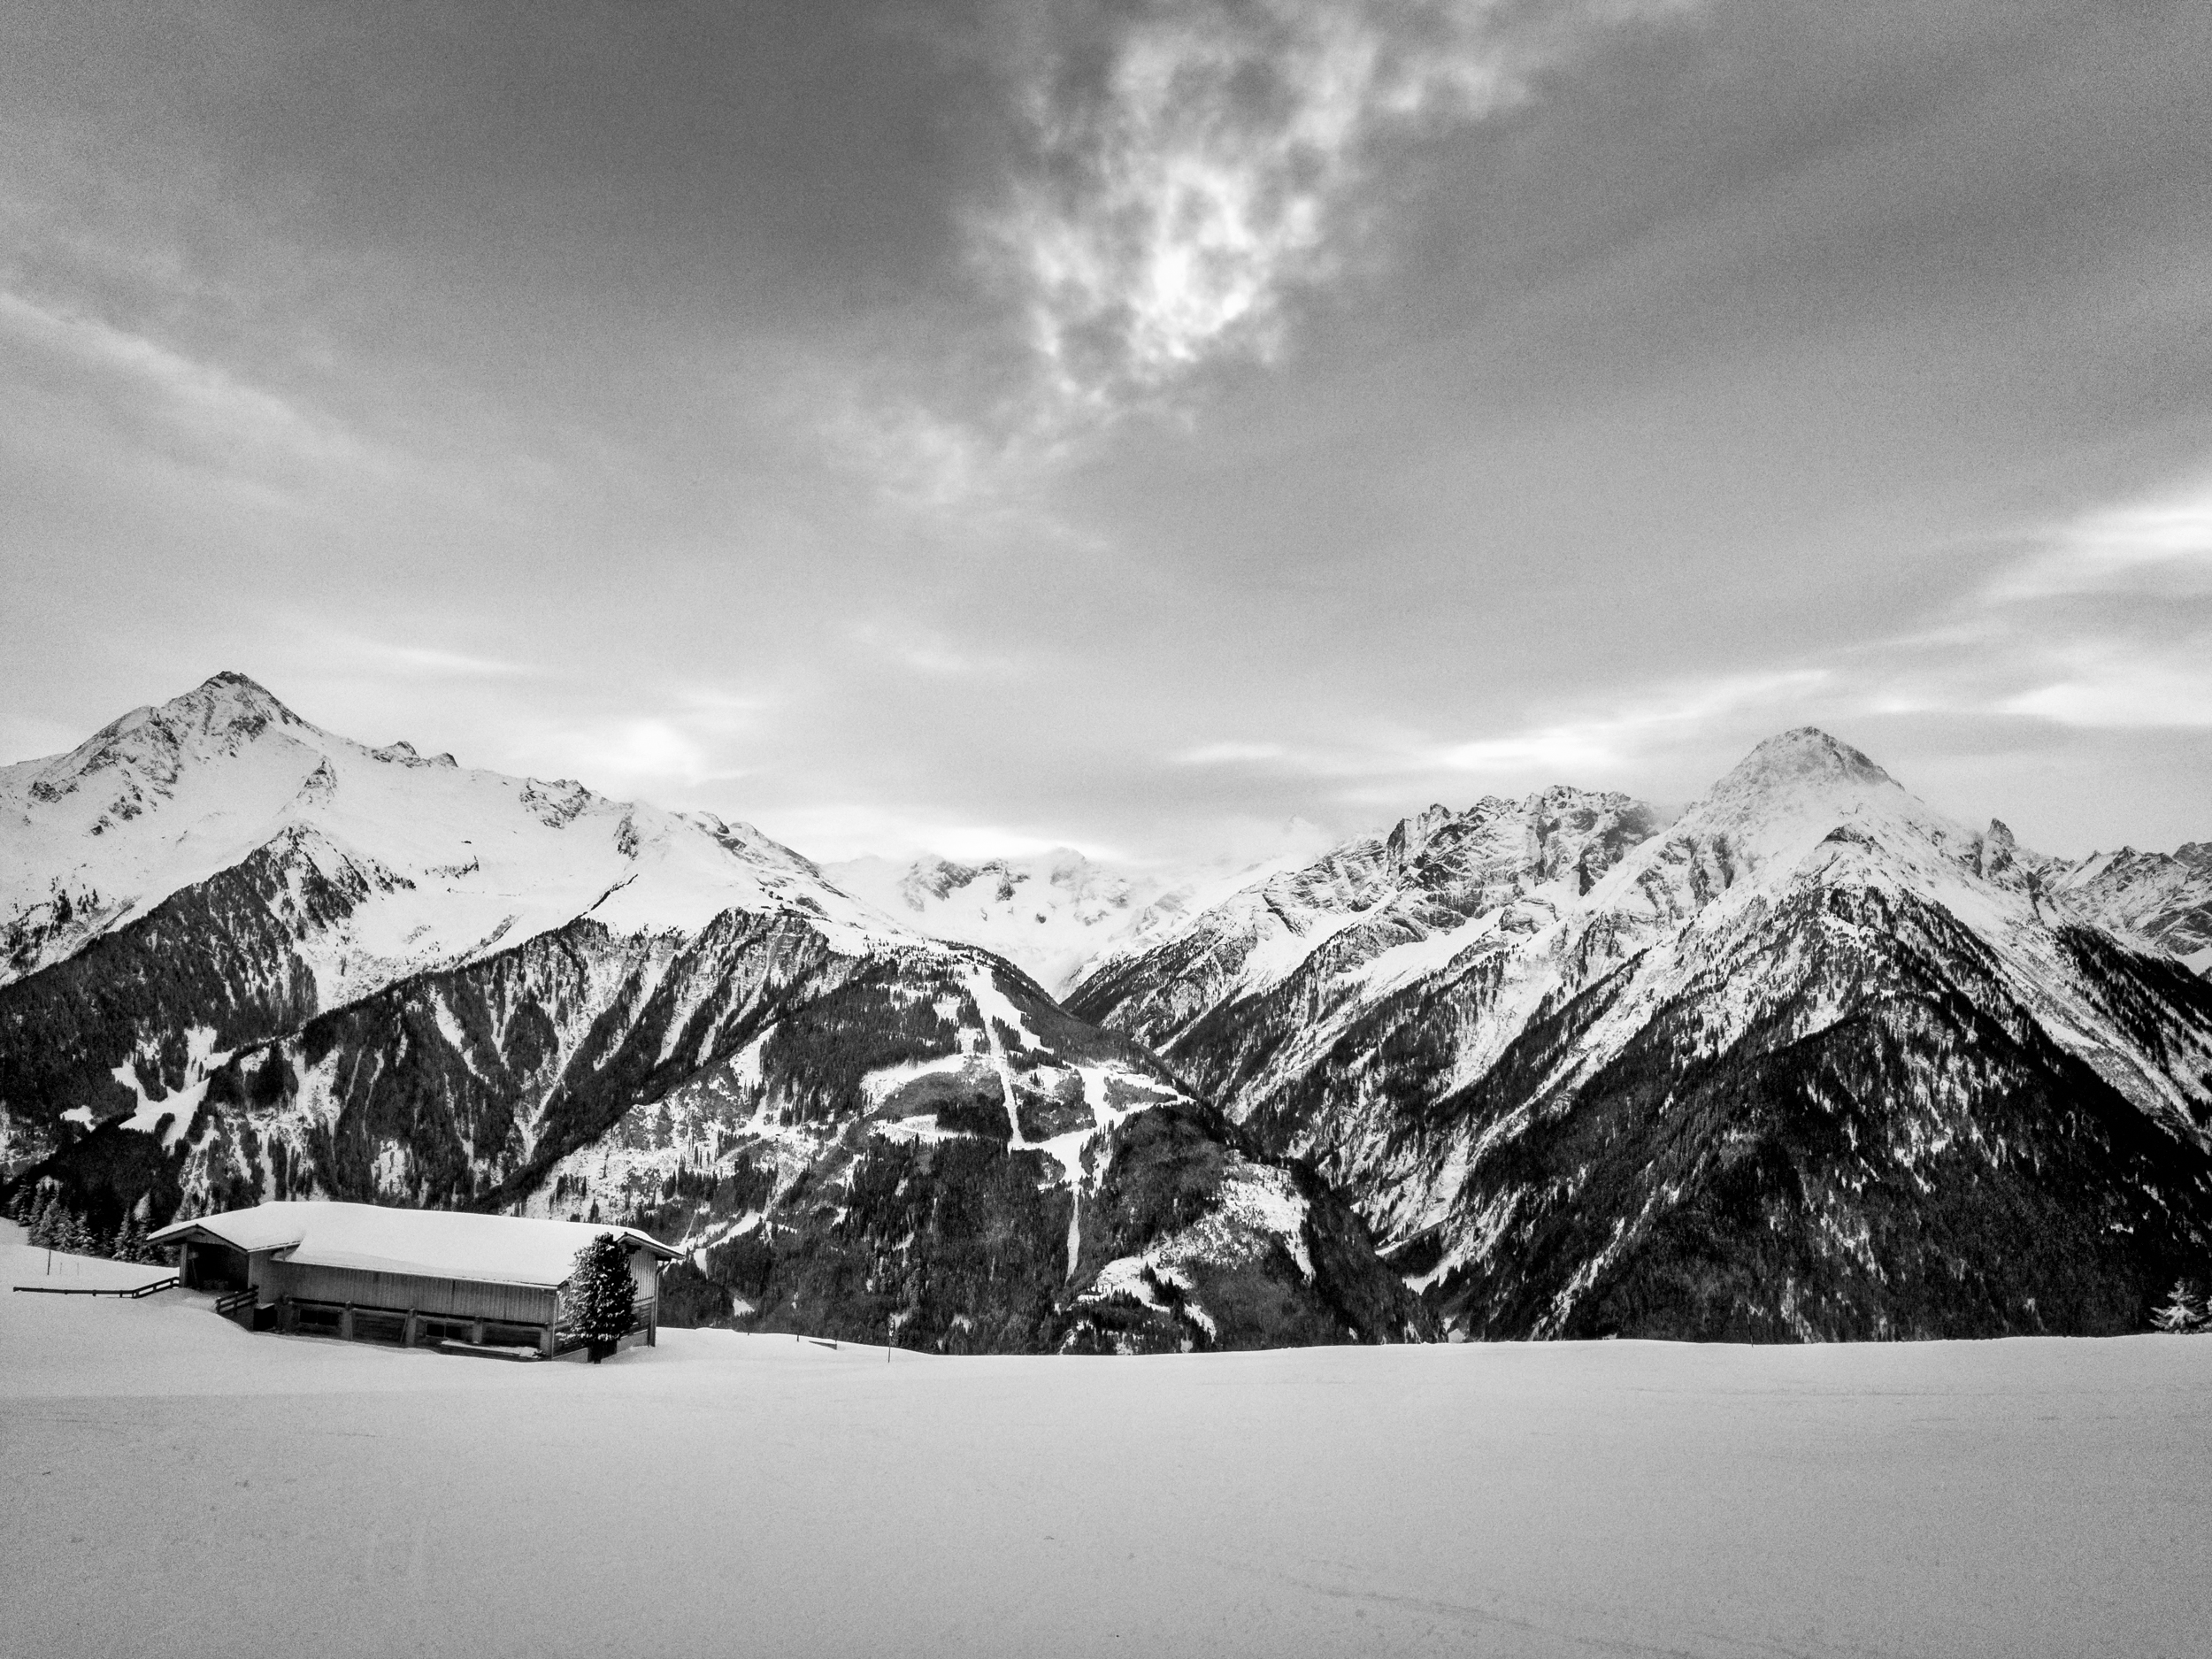 mayrhofen winter 17_09.jpg